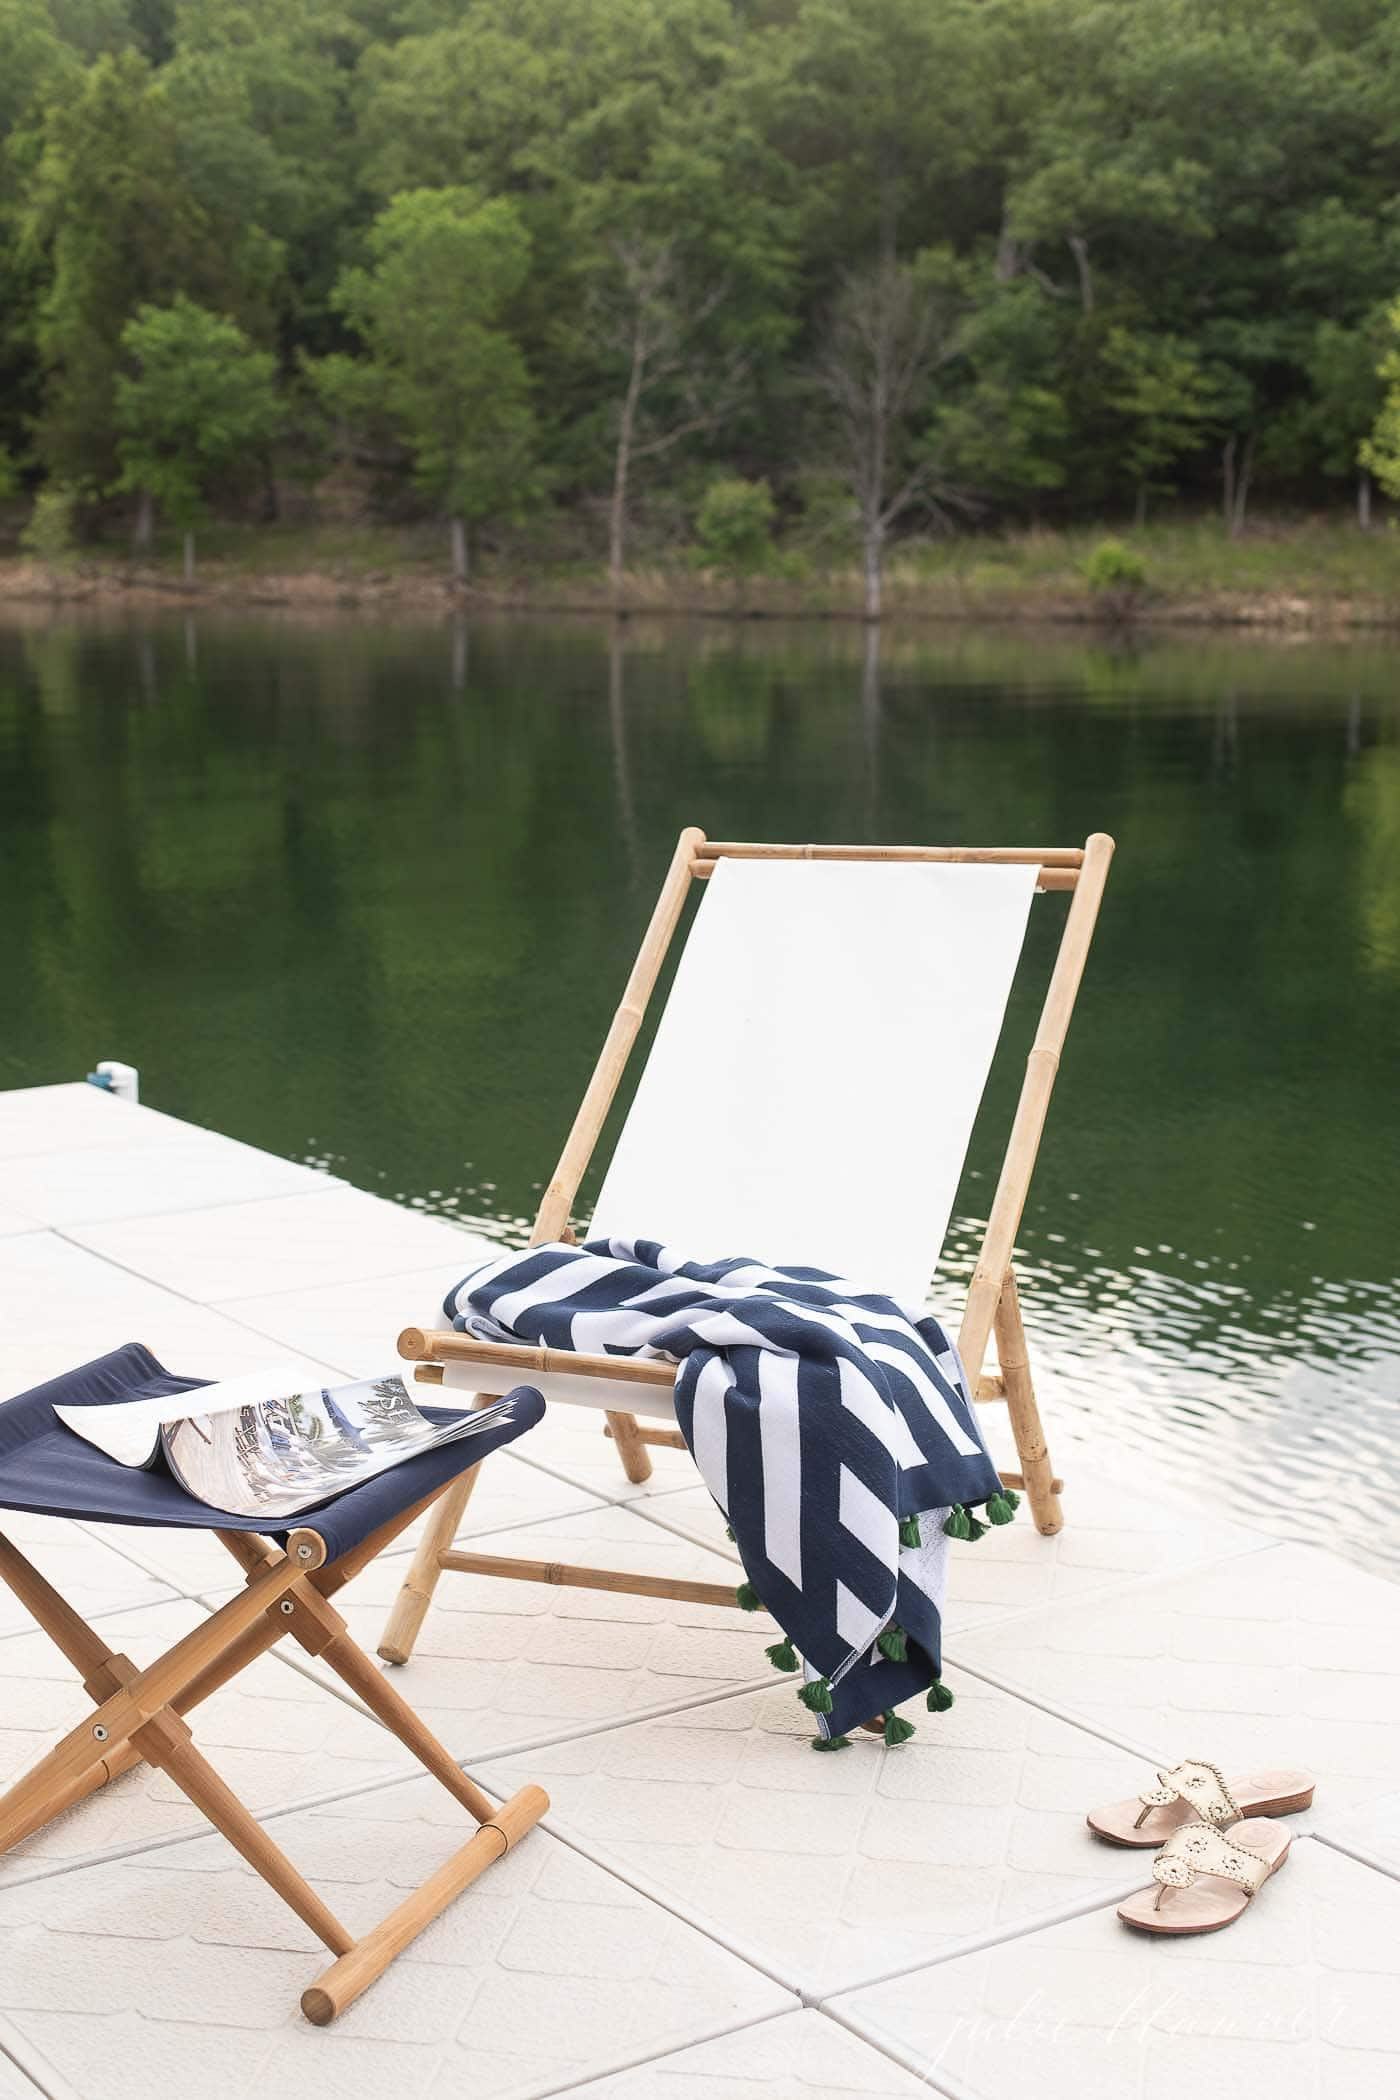 sling chair and folding stool on a dock with lake in background.